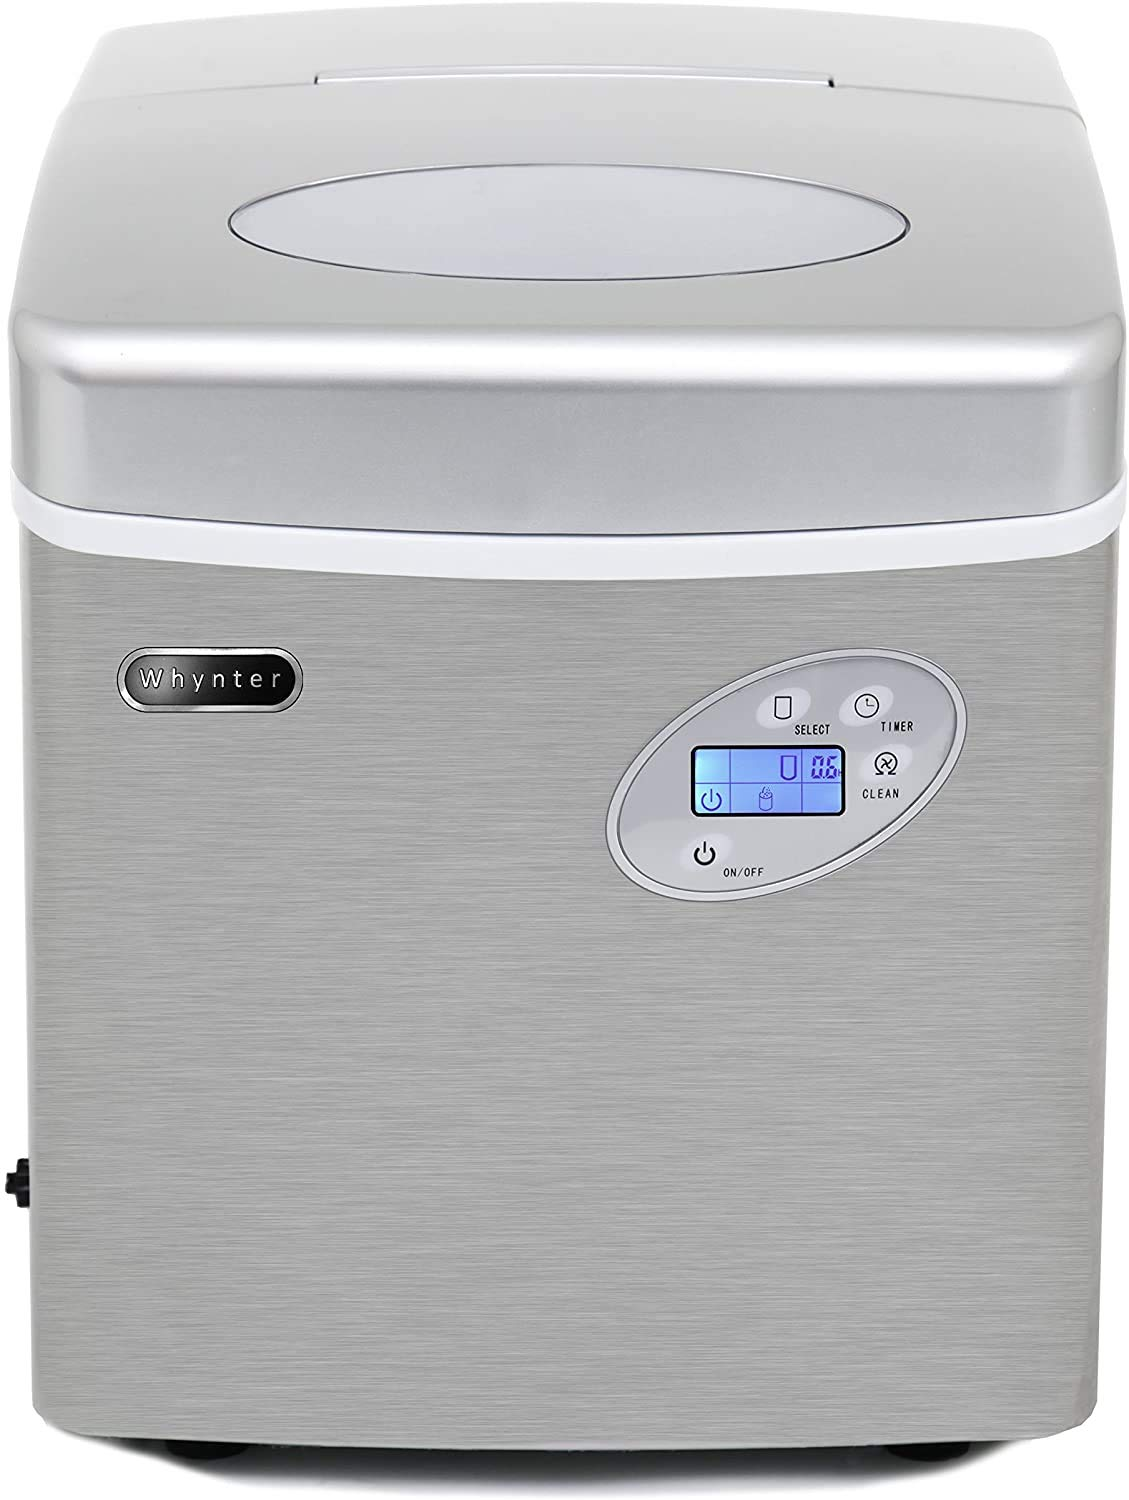 Whynter IMC-491DC Portable 49lb Capacity Stainless Steel with Water Connection Ice Makers, One Size